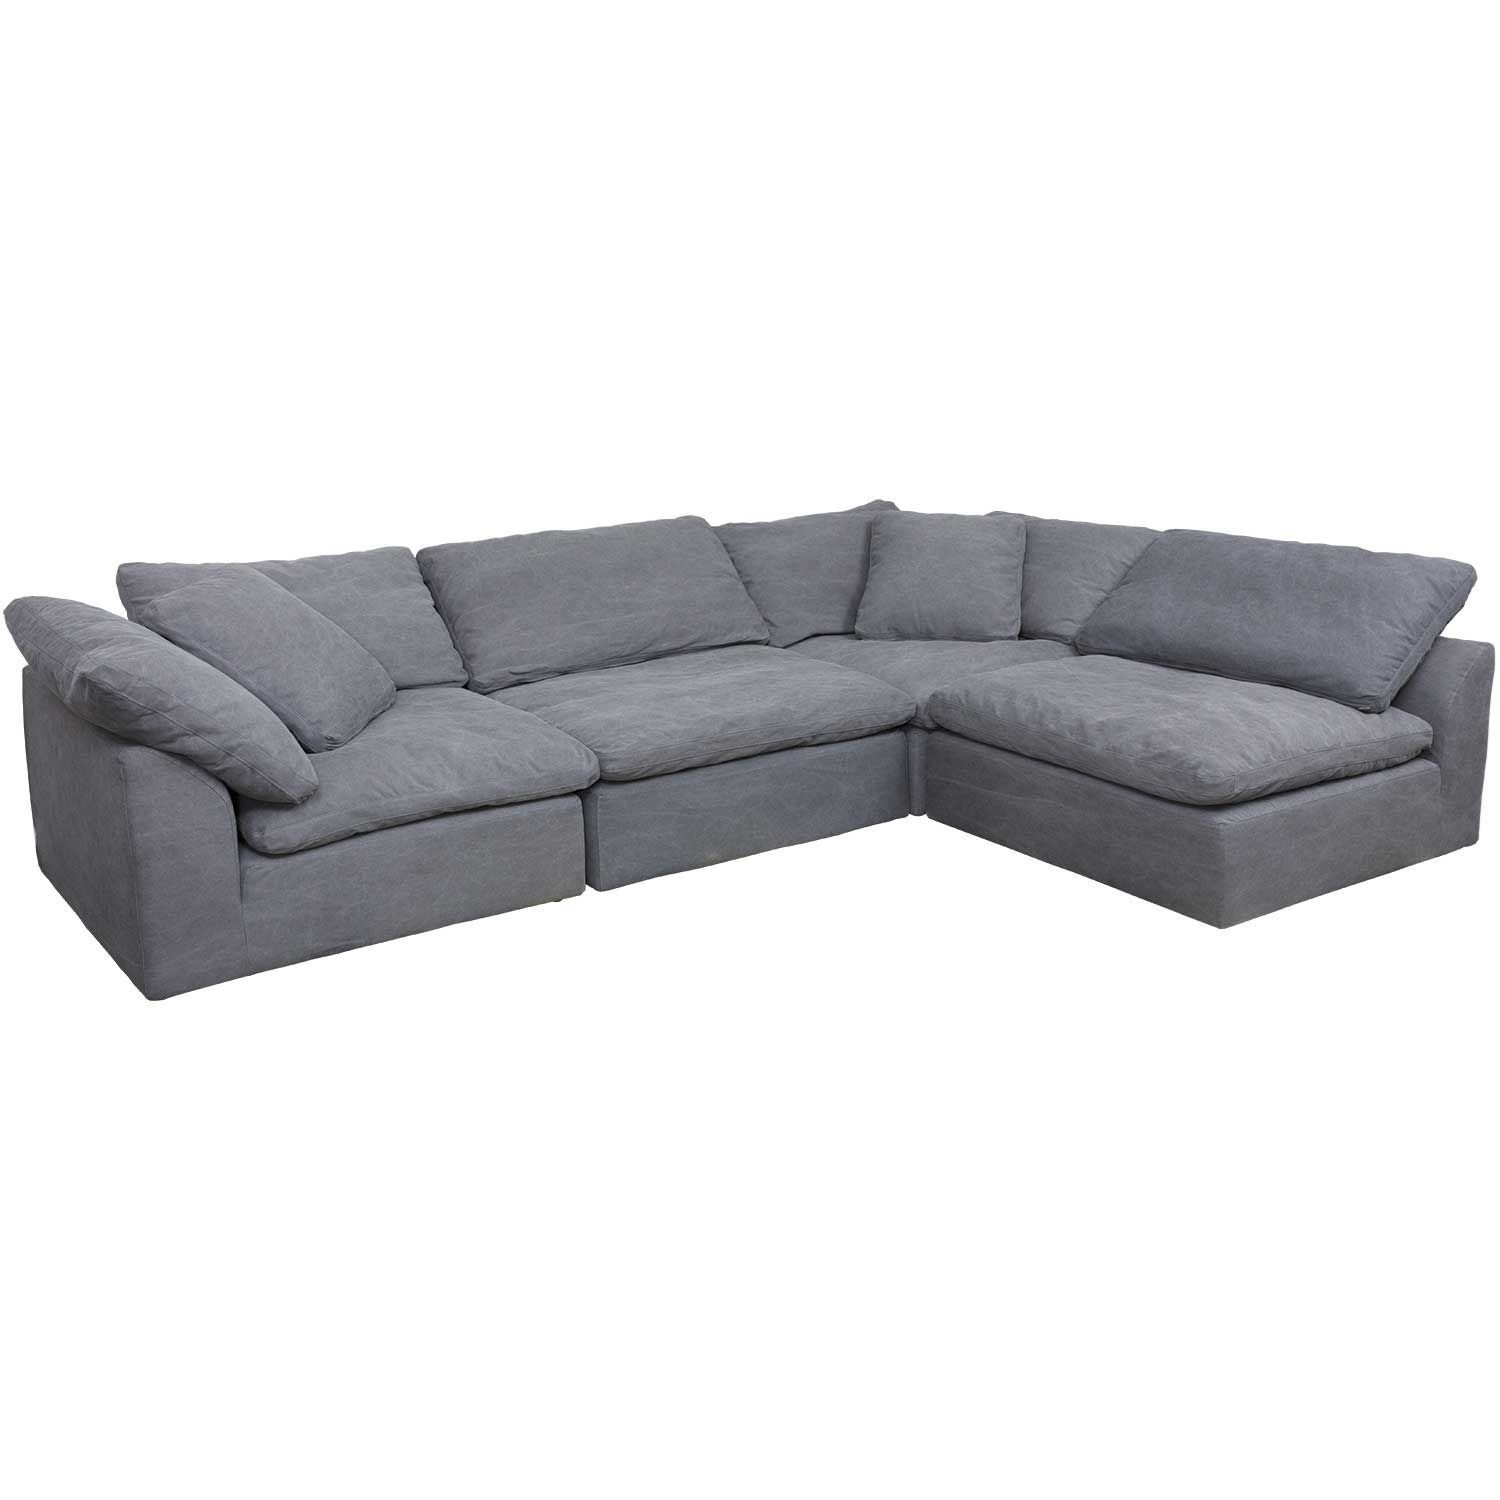 Vaughn Gray 4 Piece Sectional | 1458 51X2  37X2 | Synergy Home For Mesa Foam 2 Piece Sectionals (Image 25 of 25)